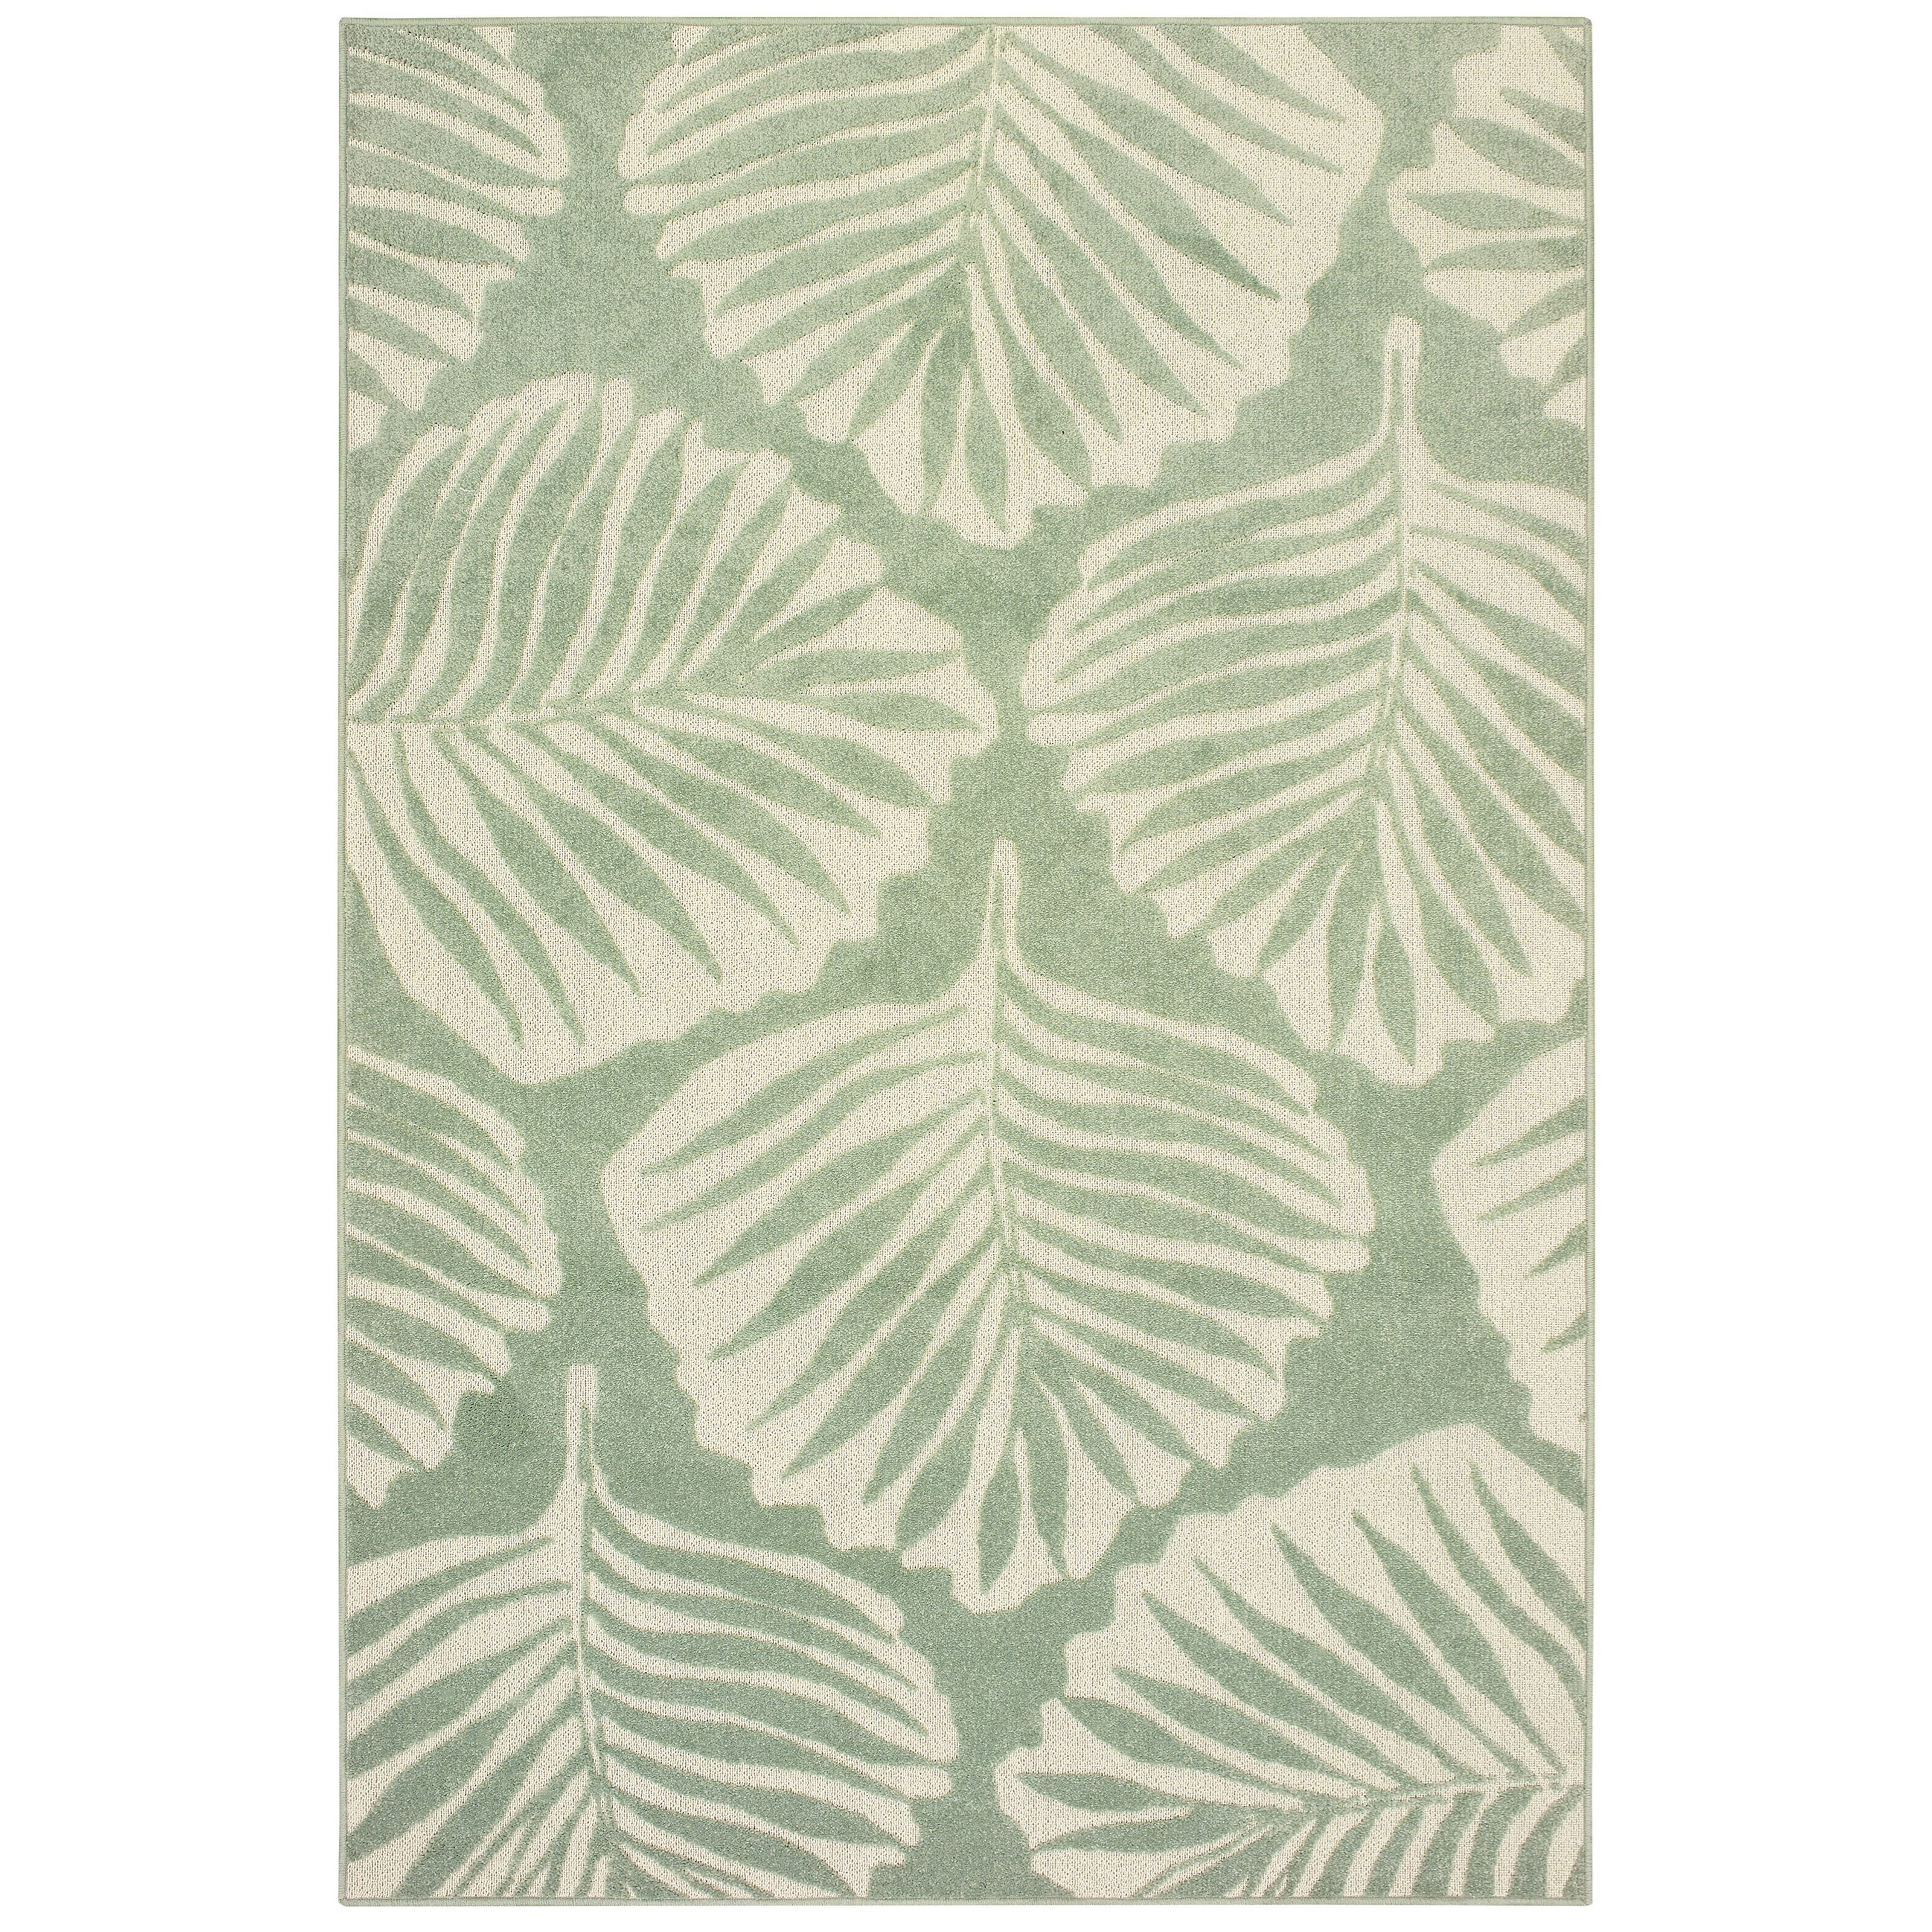 Barbados 8x10 Rug by Oriental Weavers at Red Knot